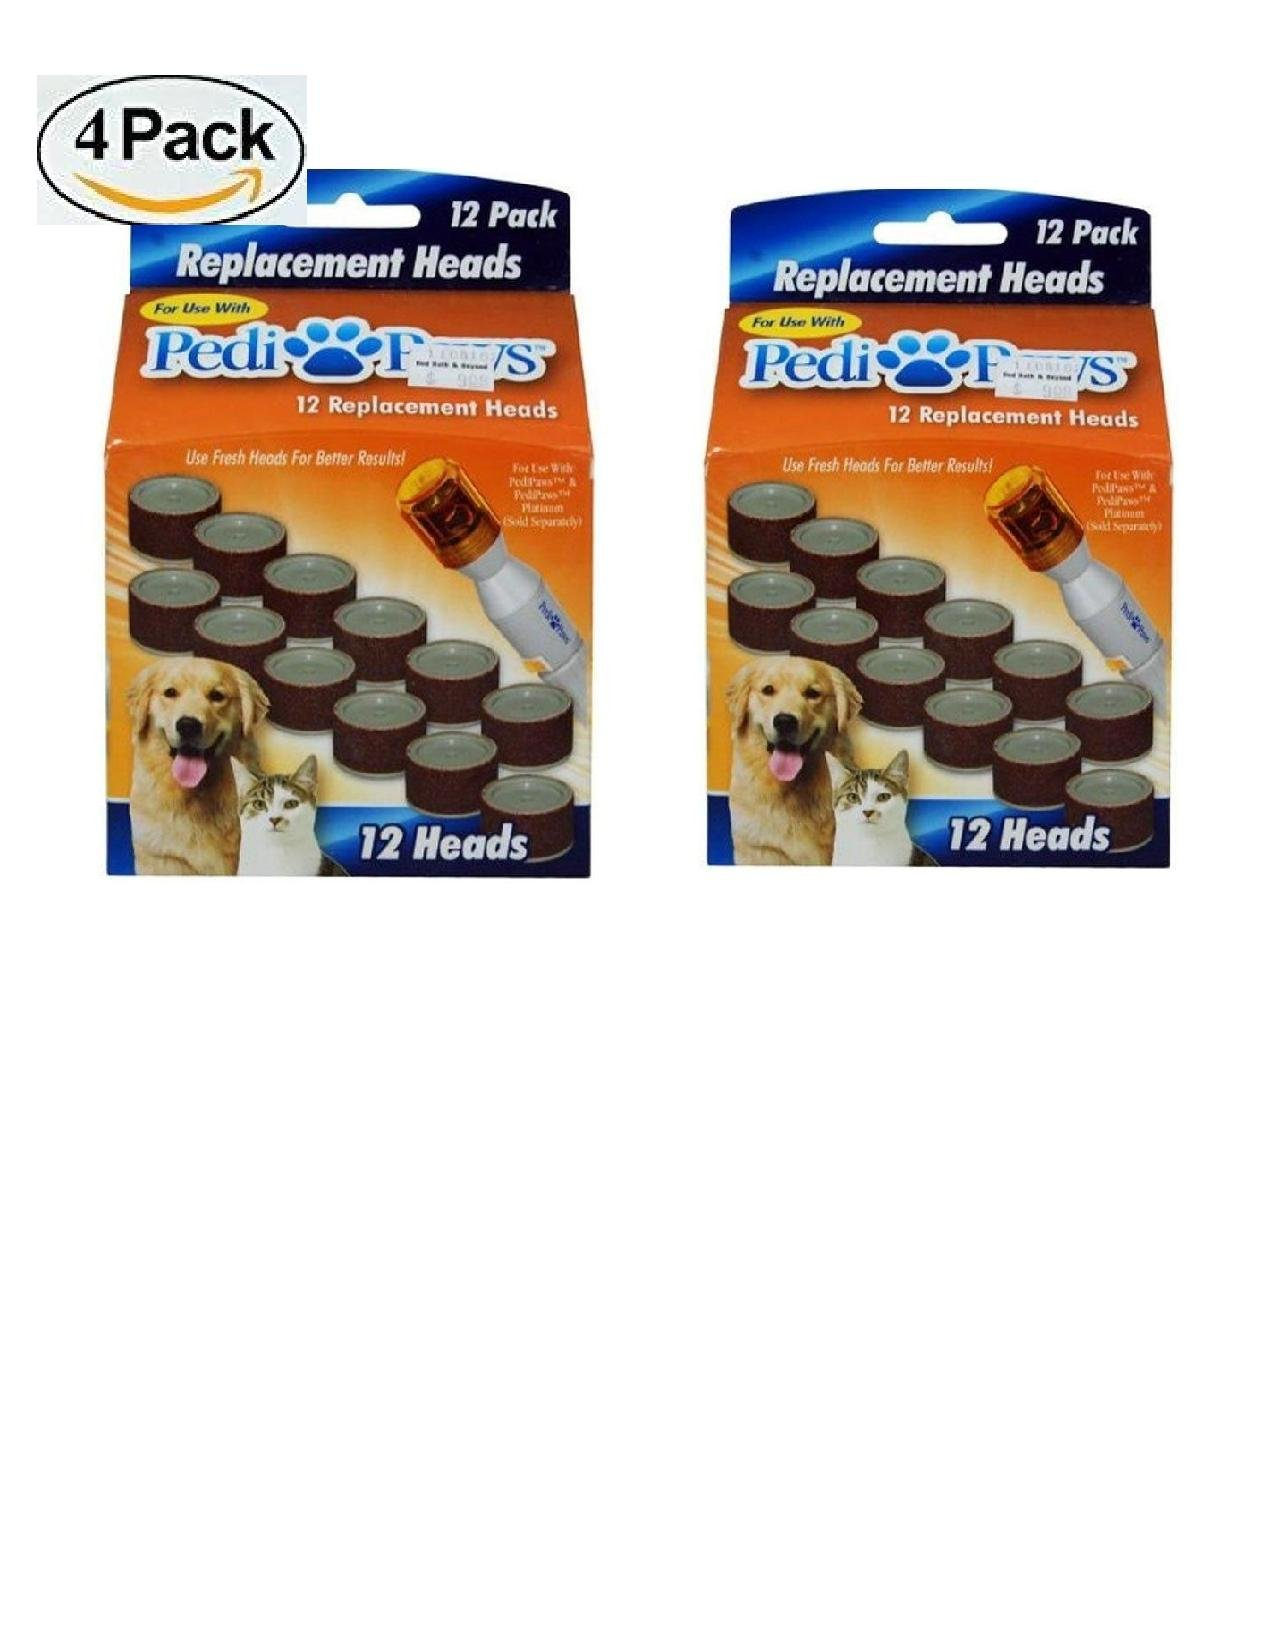 (48 Refills ) PediPaws Replacement Filing Heads 12 pack (Set of 4)